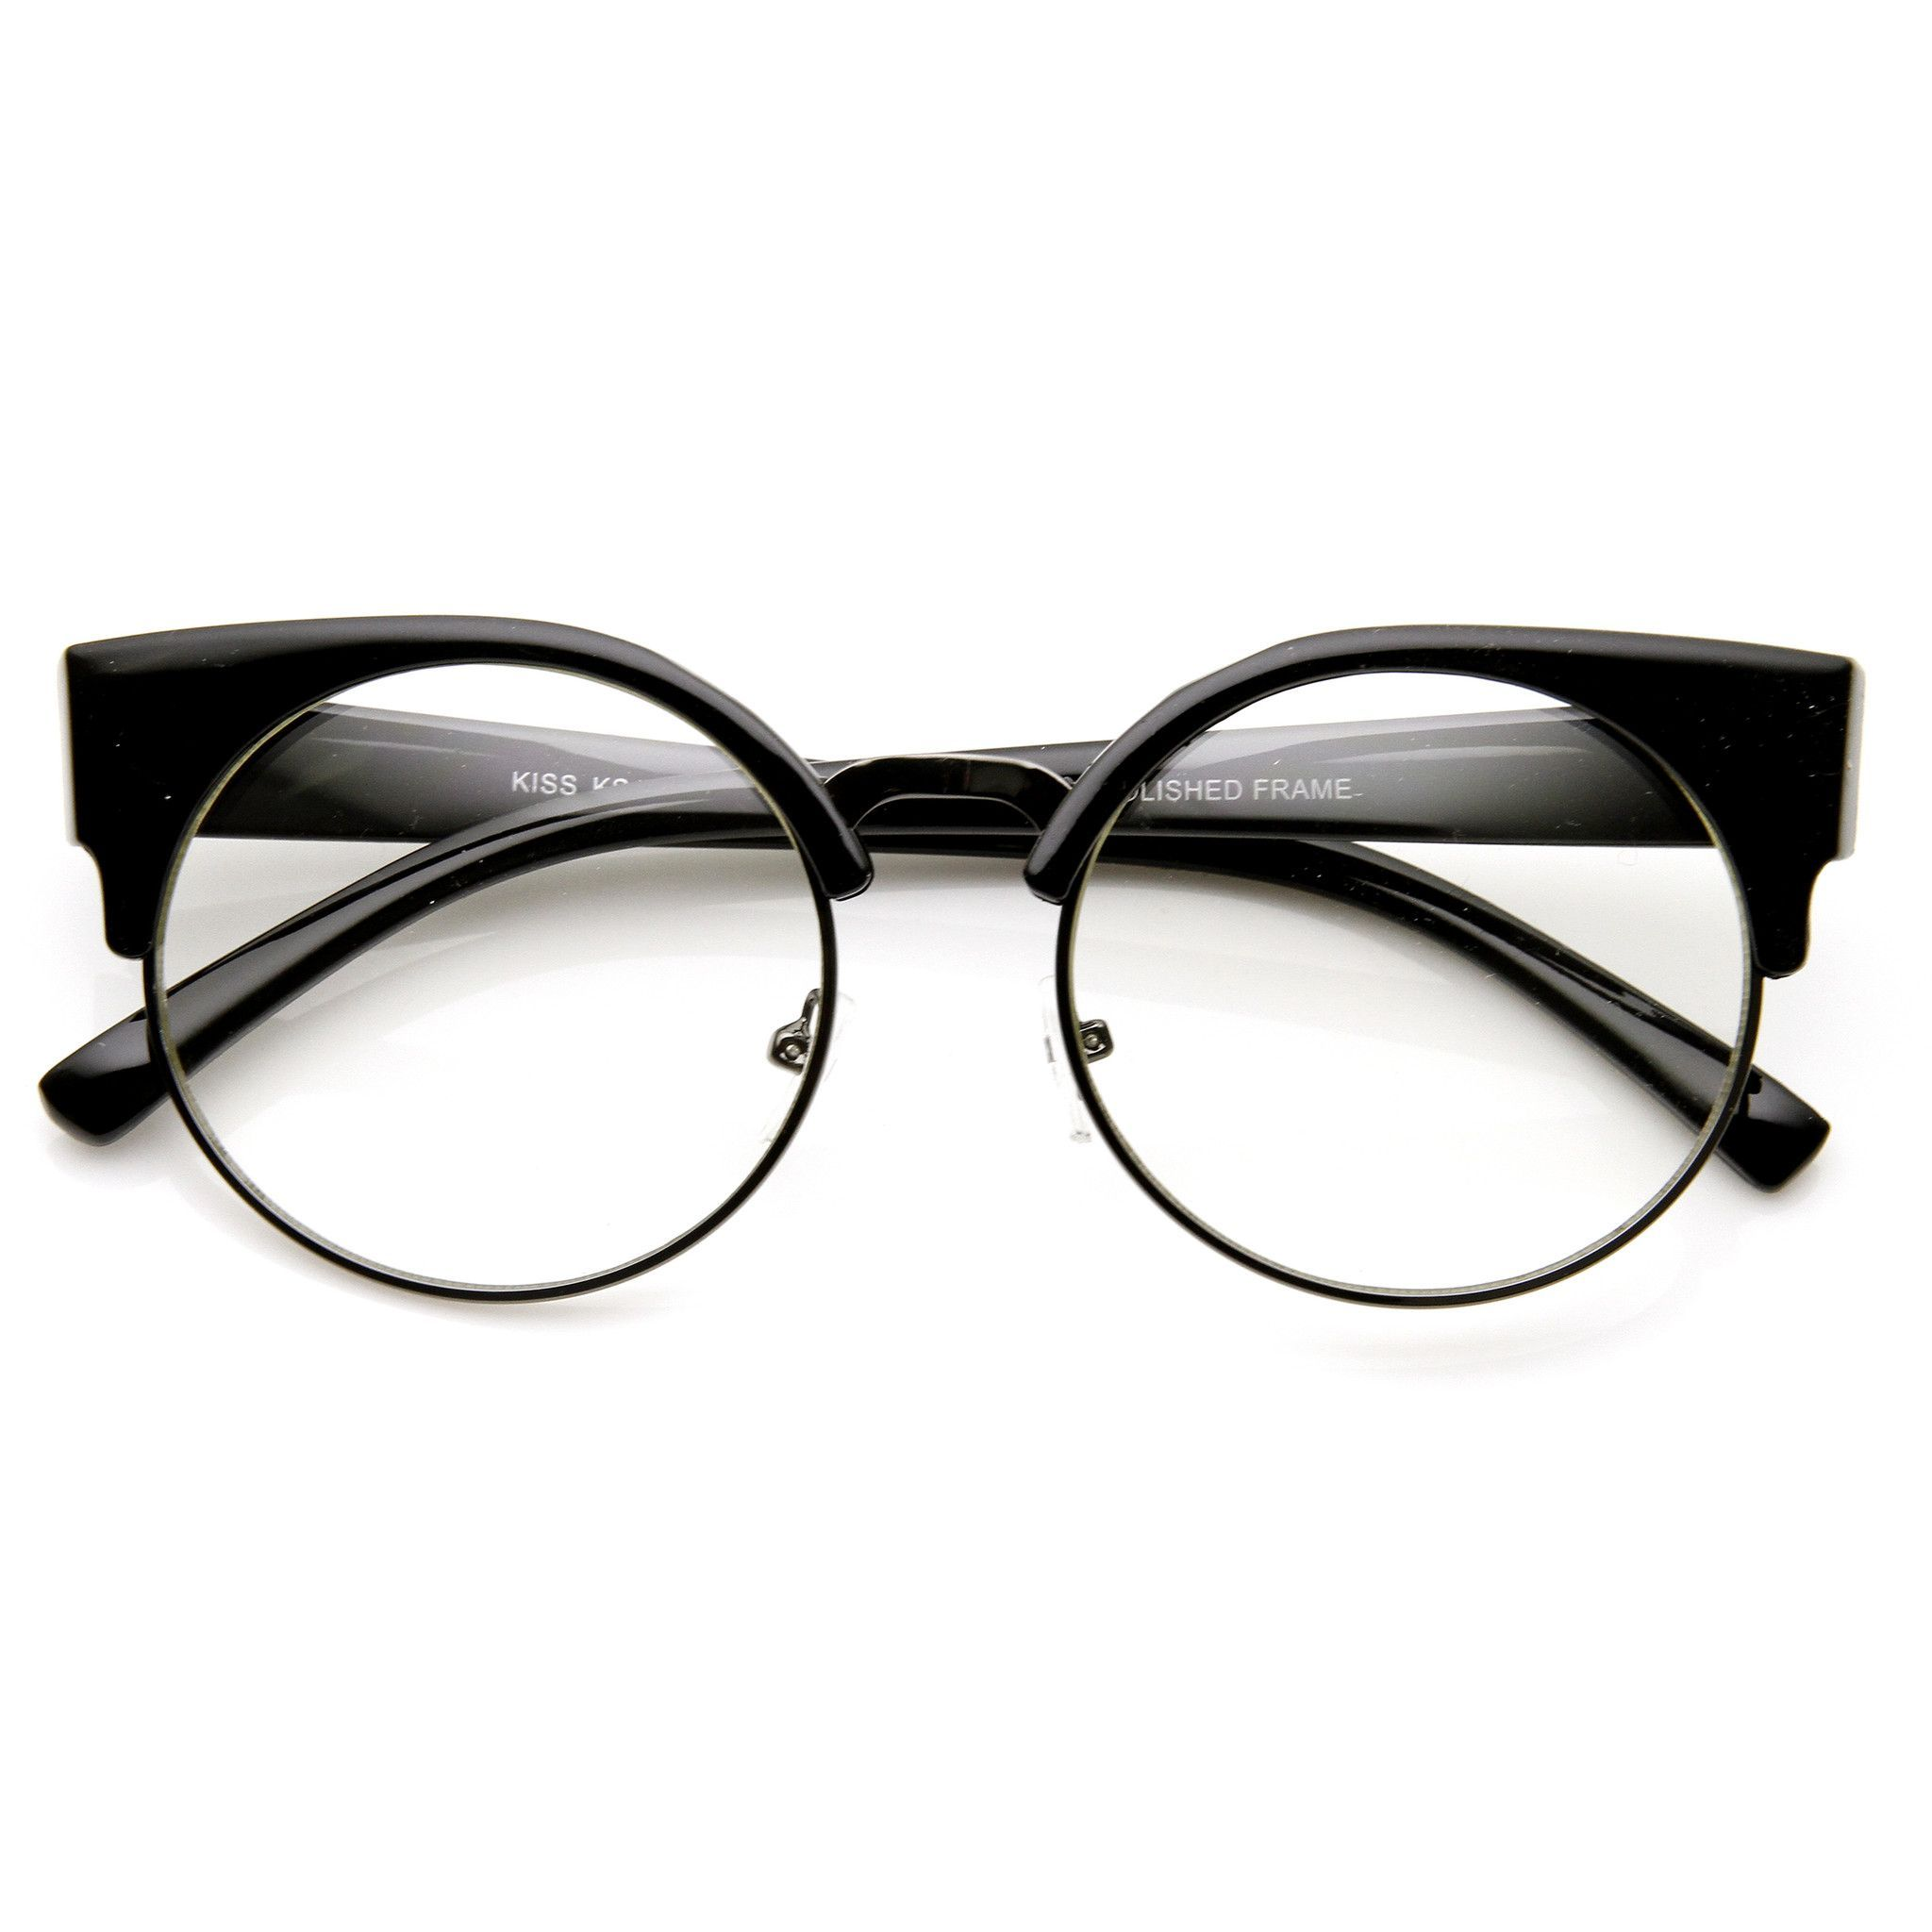 b06744370a Indie Hipster Round Cat Eye Clear Lens Half Frame Glasses 9351 ...